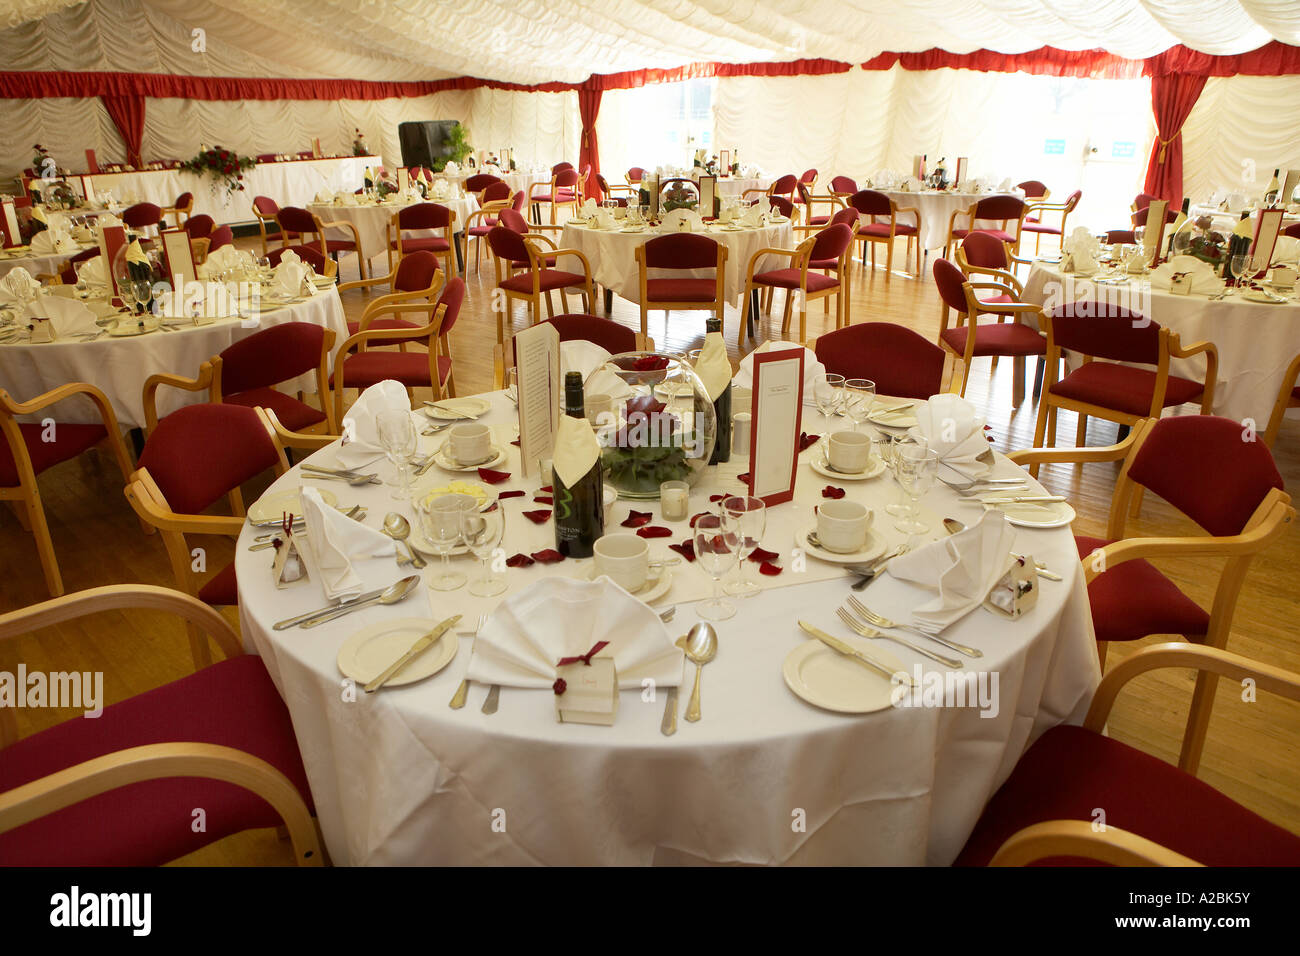 Tables set for a formal wedding reception inside a marquee Formal place settings at a wedding reception & Tables set for a formal wedding reception inside a marquee Formal ...